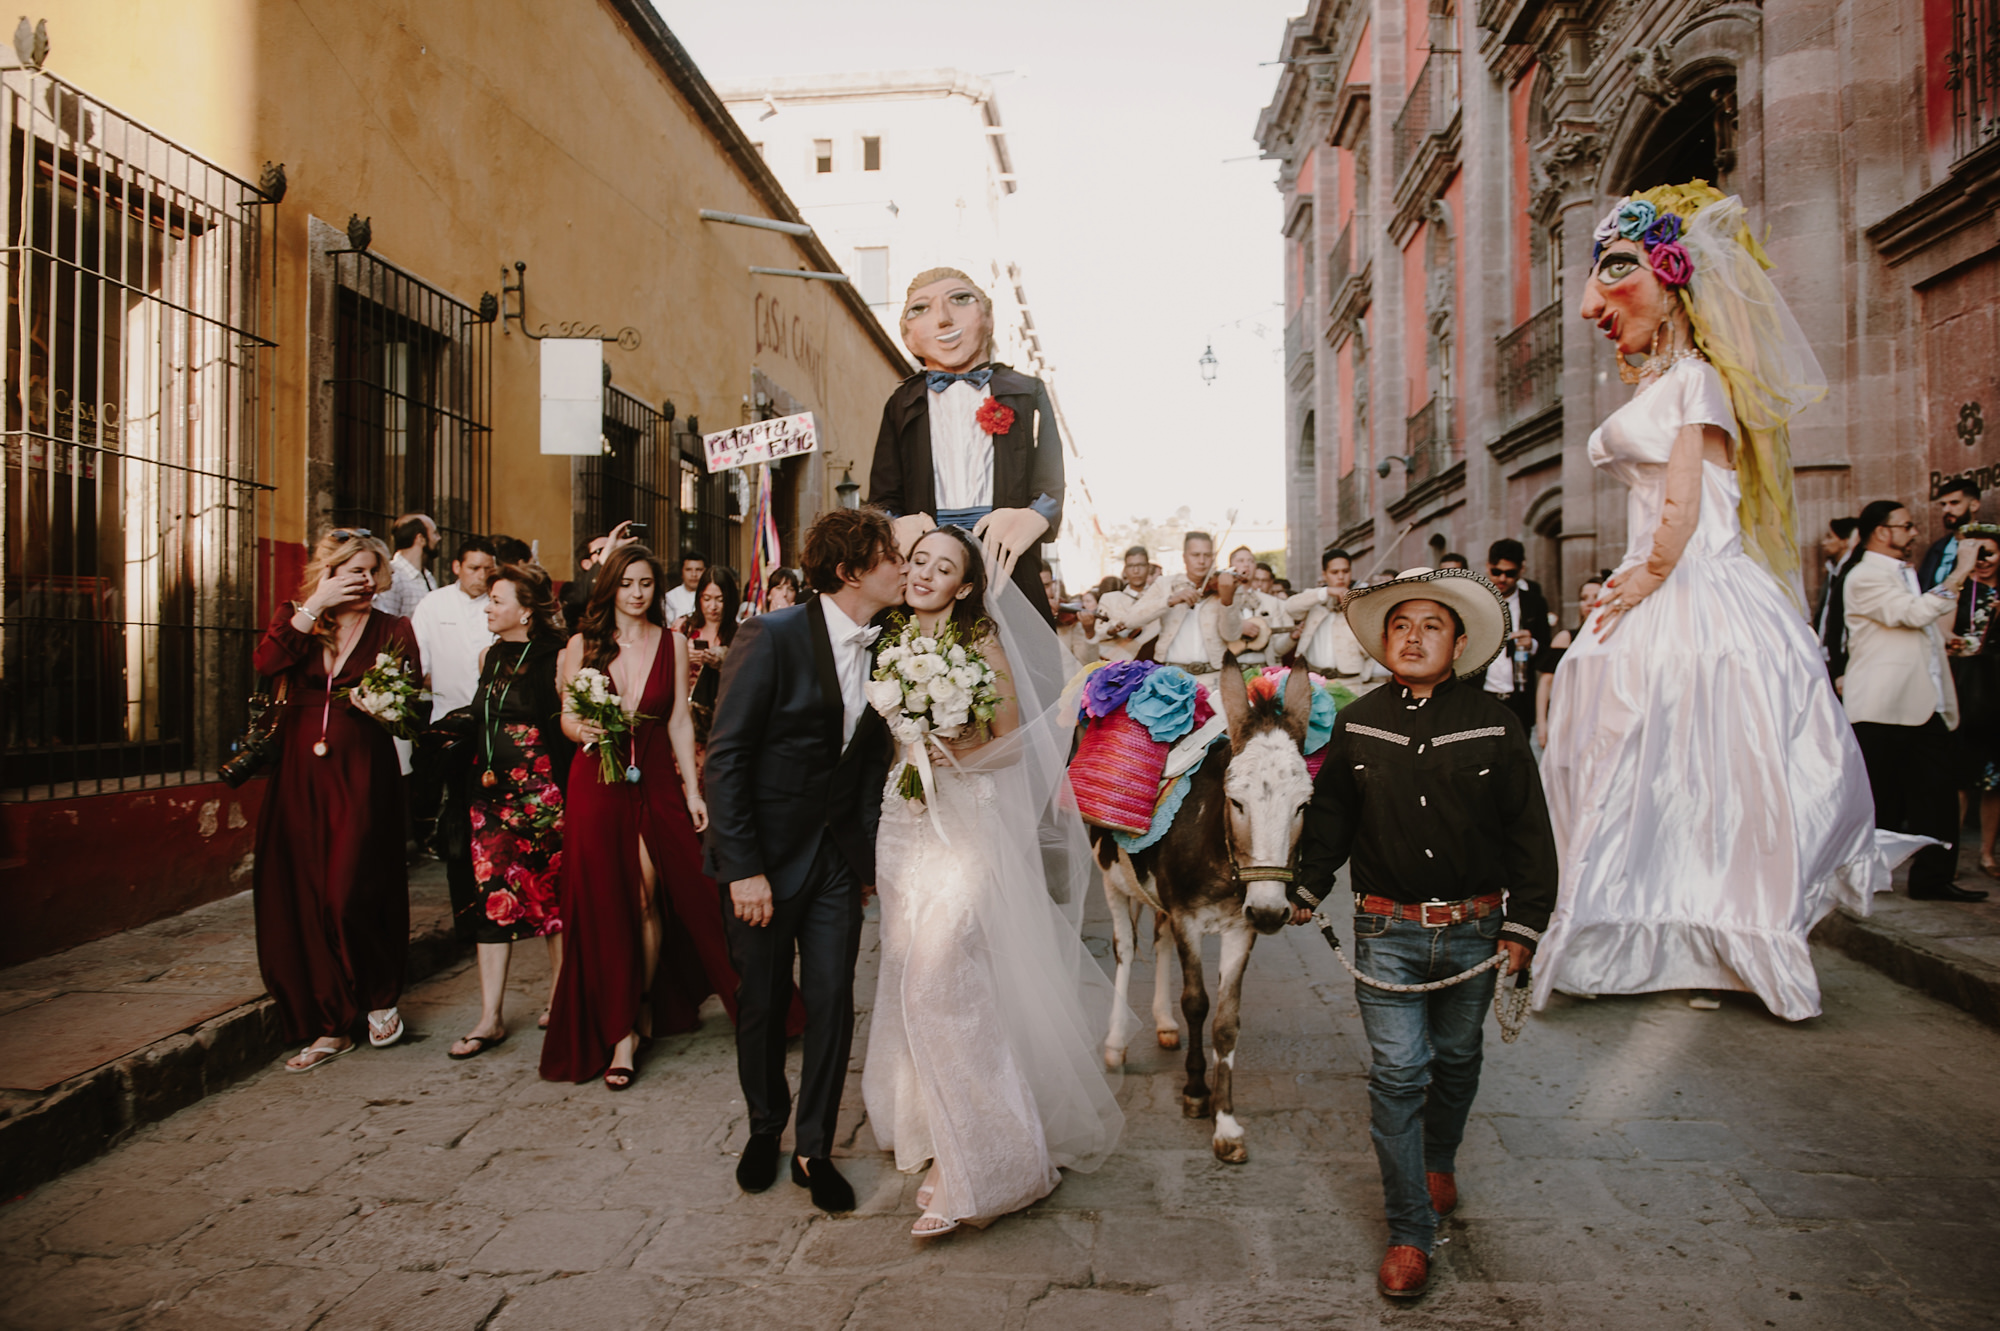 Mexican wedding recessional with large puppets - photo by Kristen Marie Parker